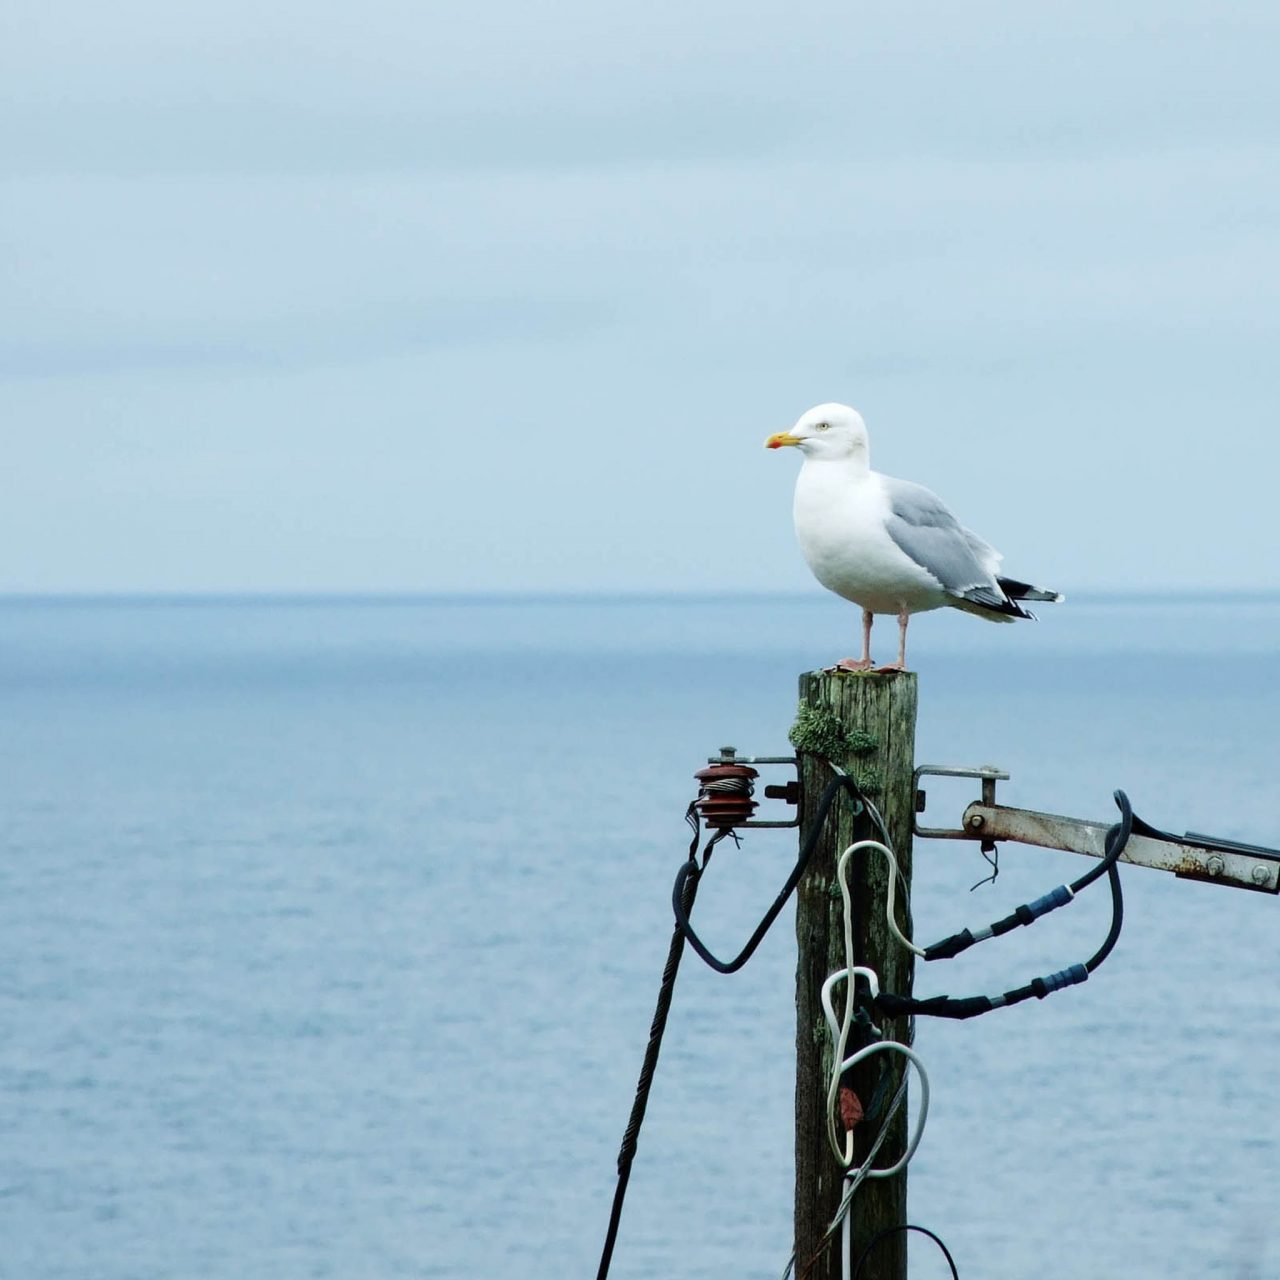 Gull Perched